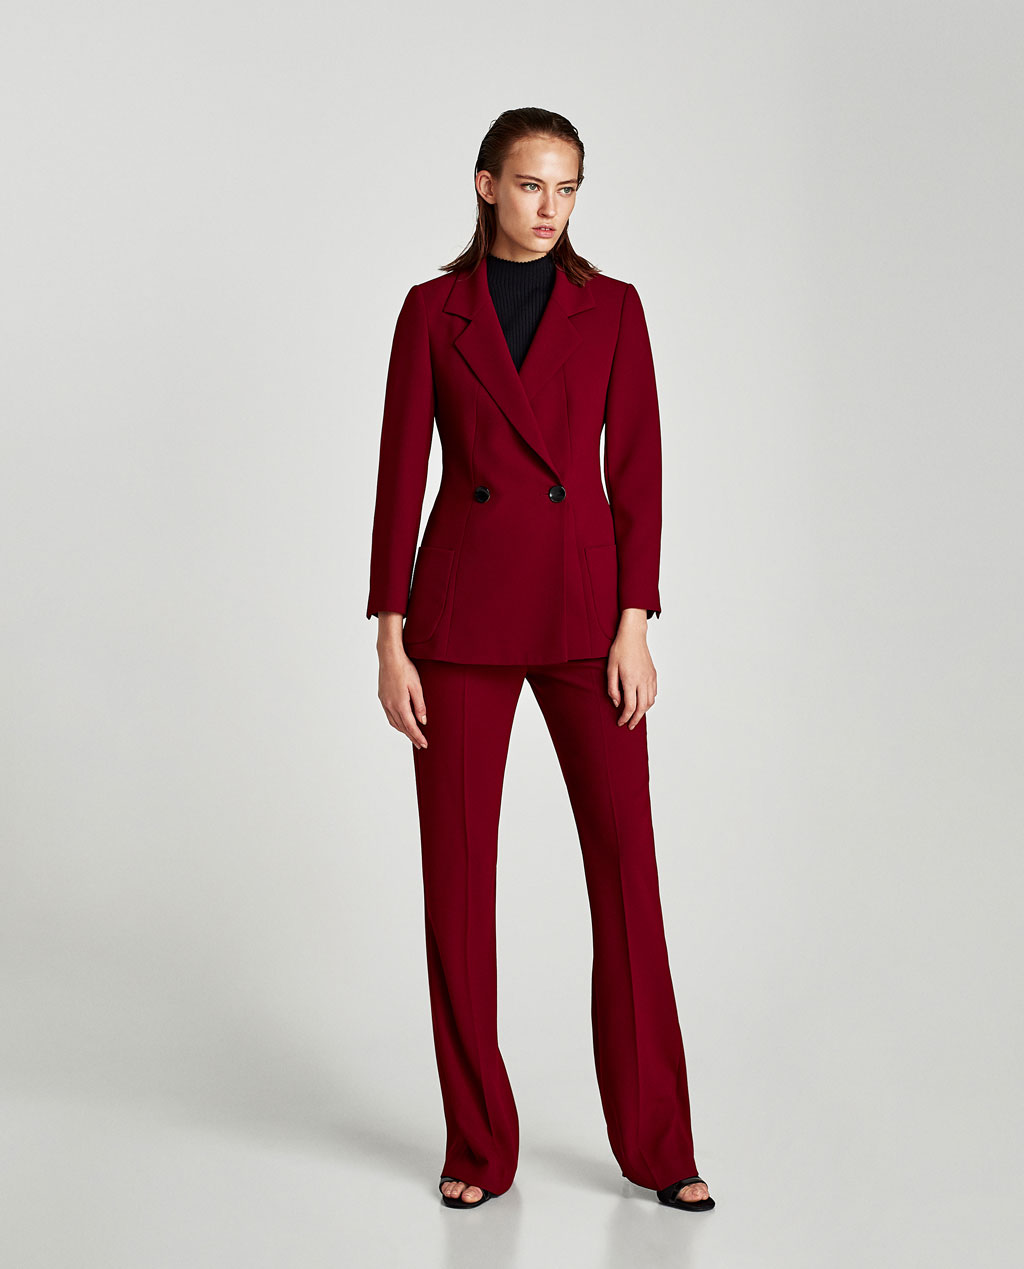 red pant suit